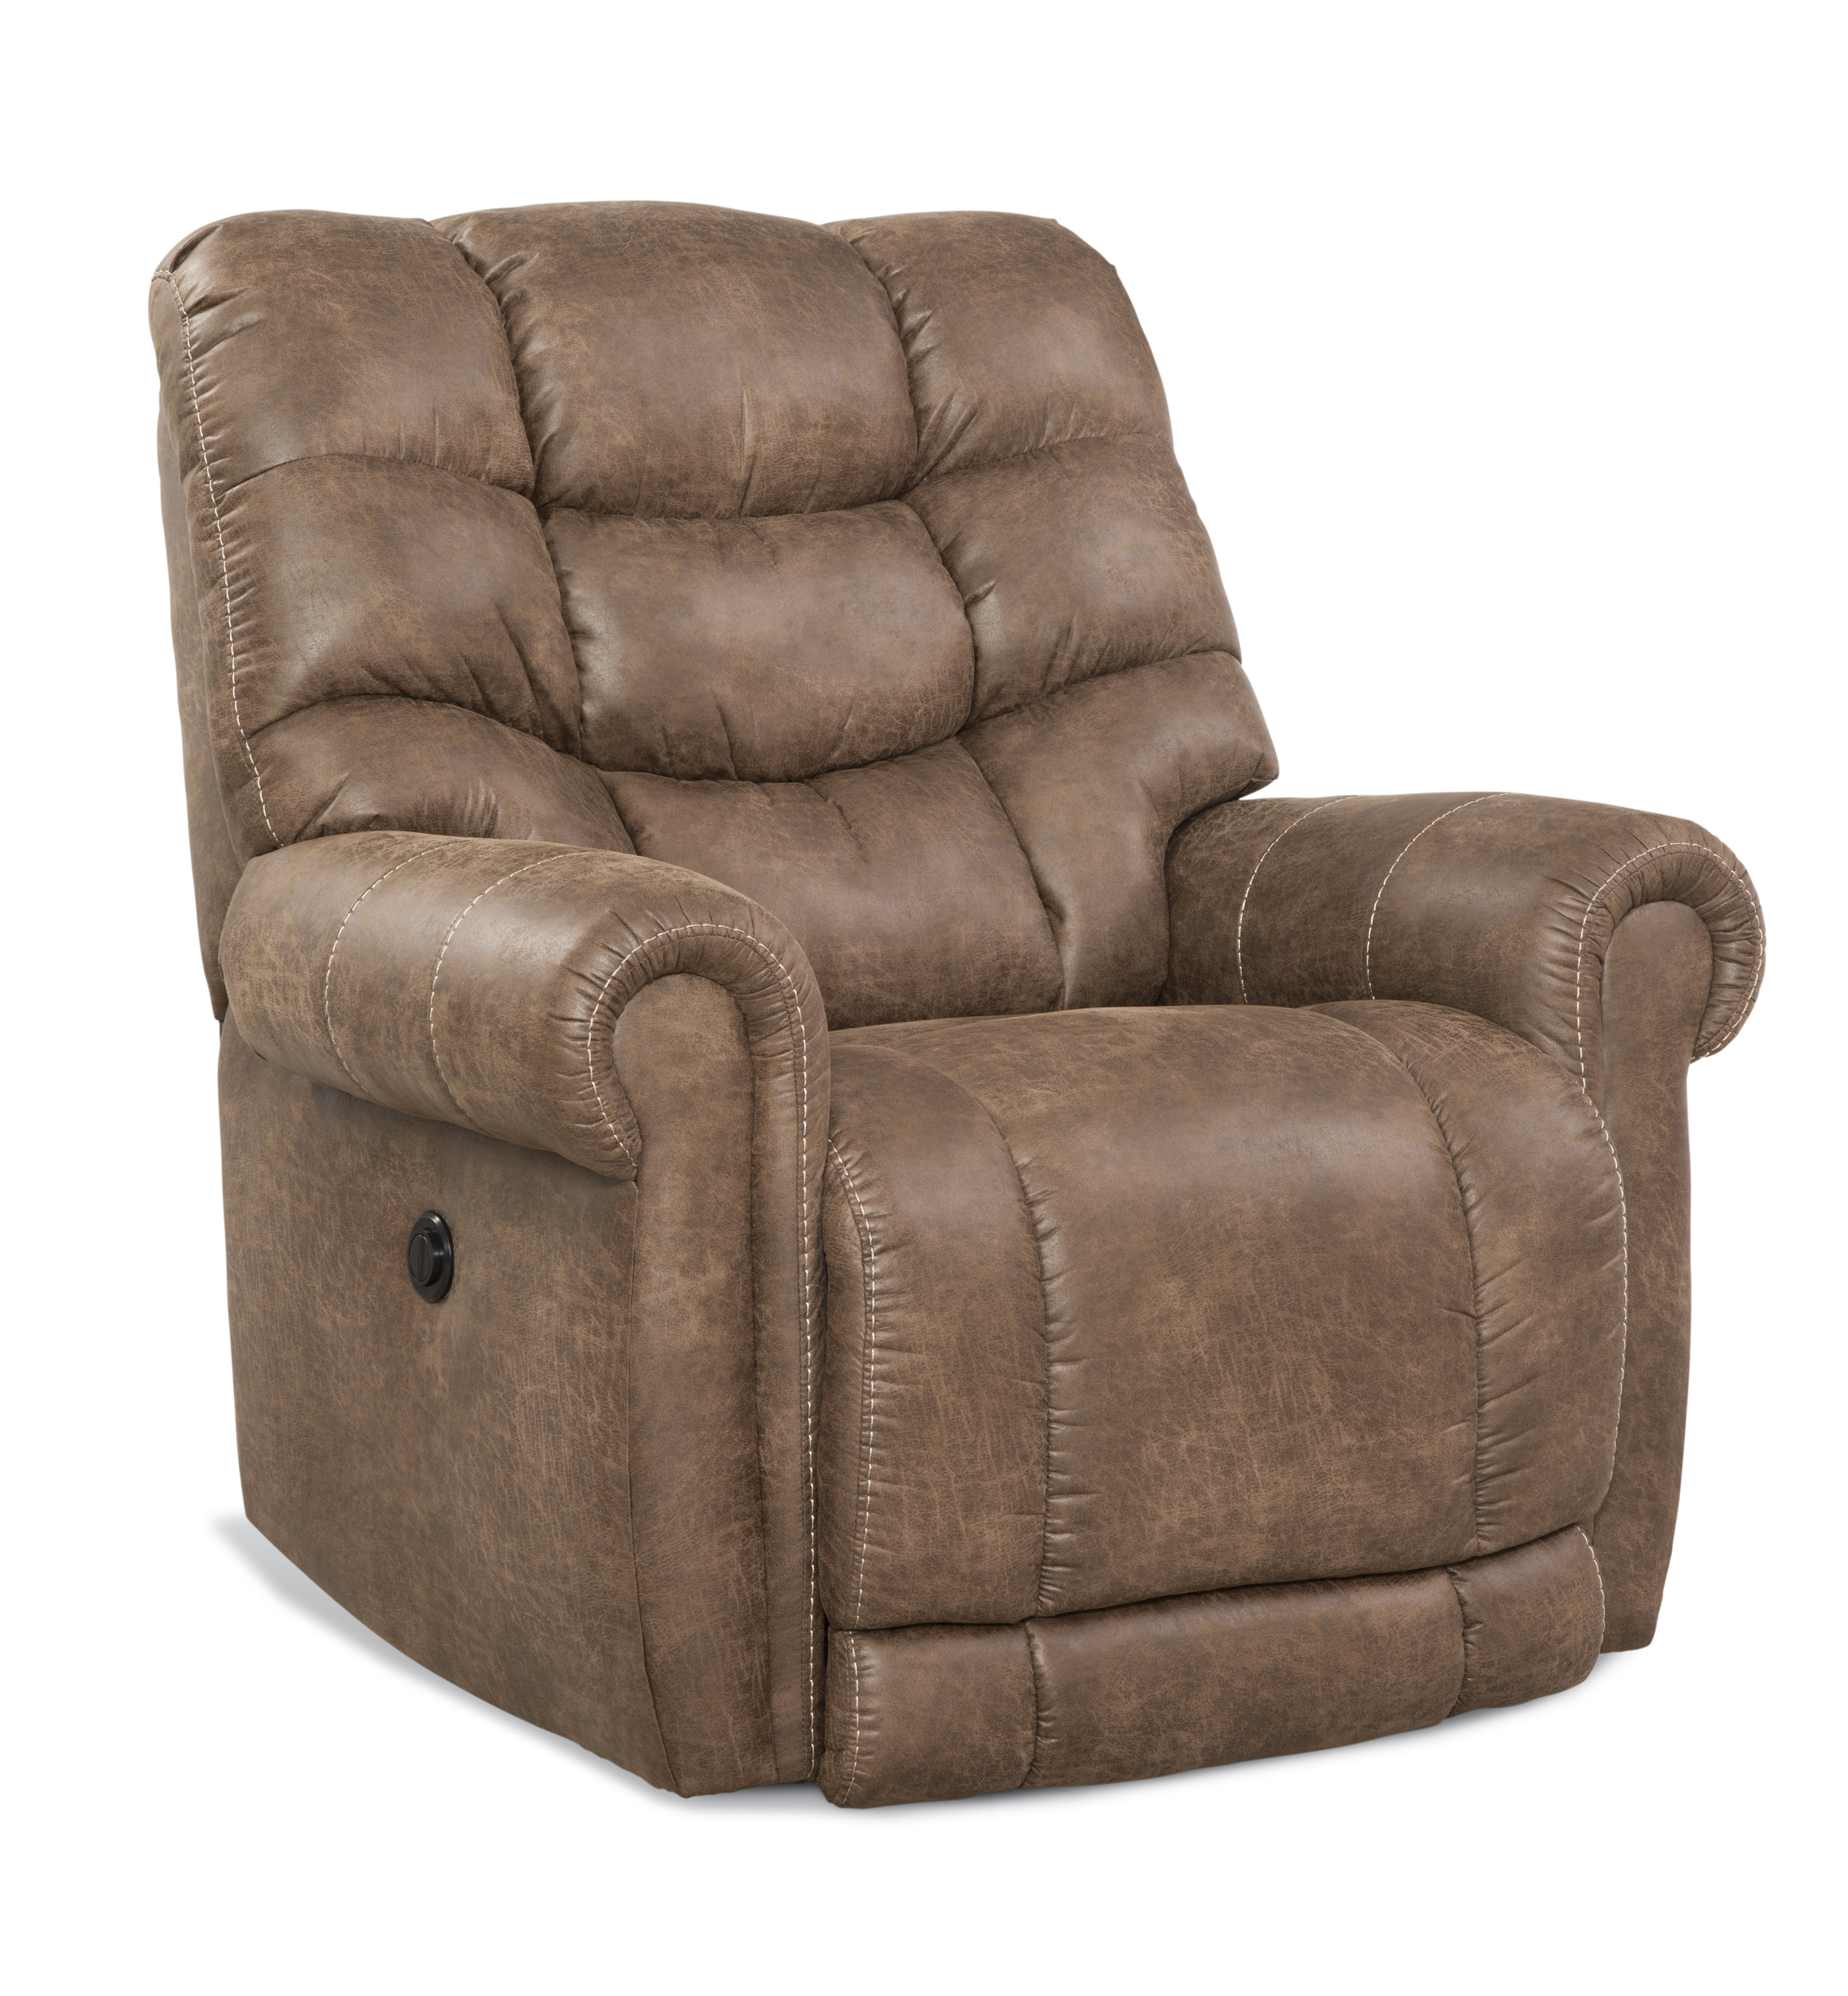 Home Stretch Recliner Parts Review Home Co